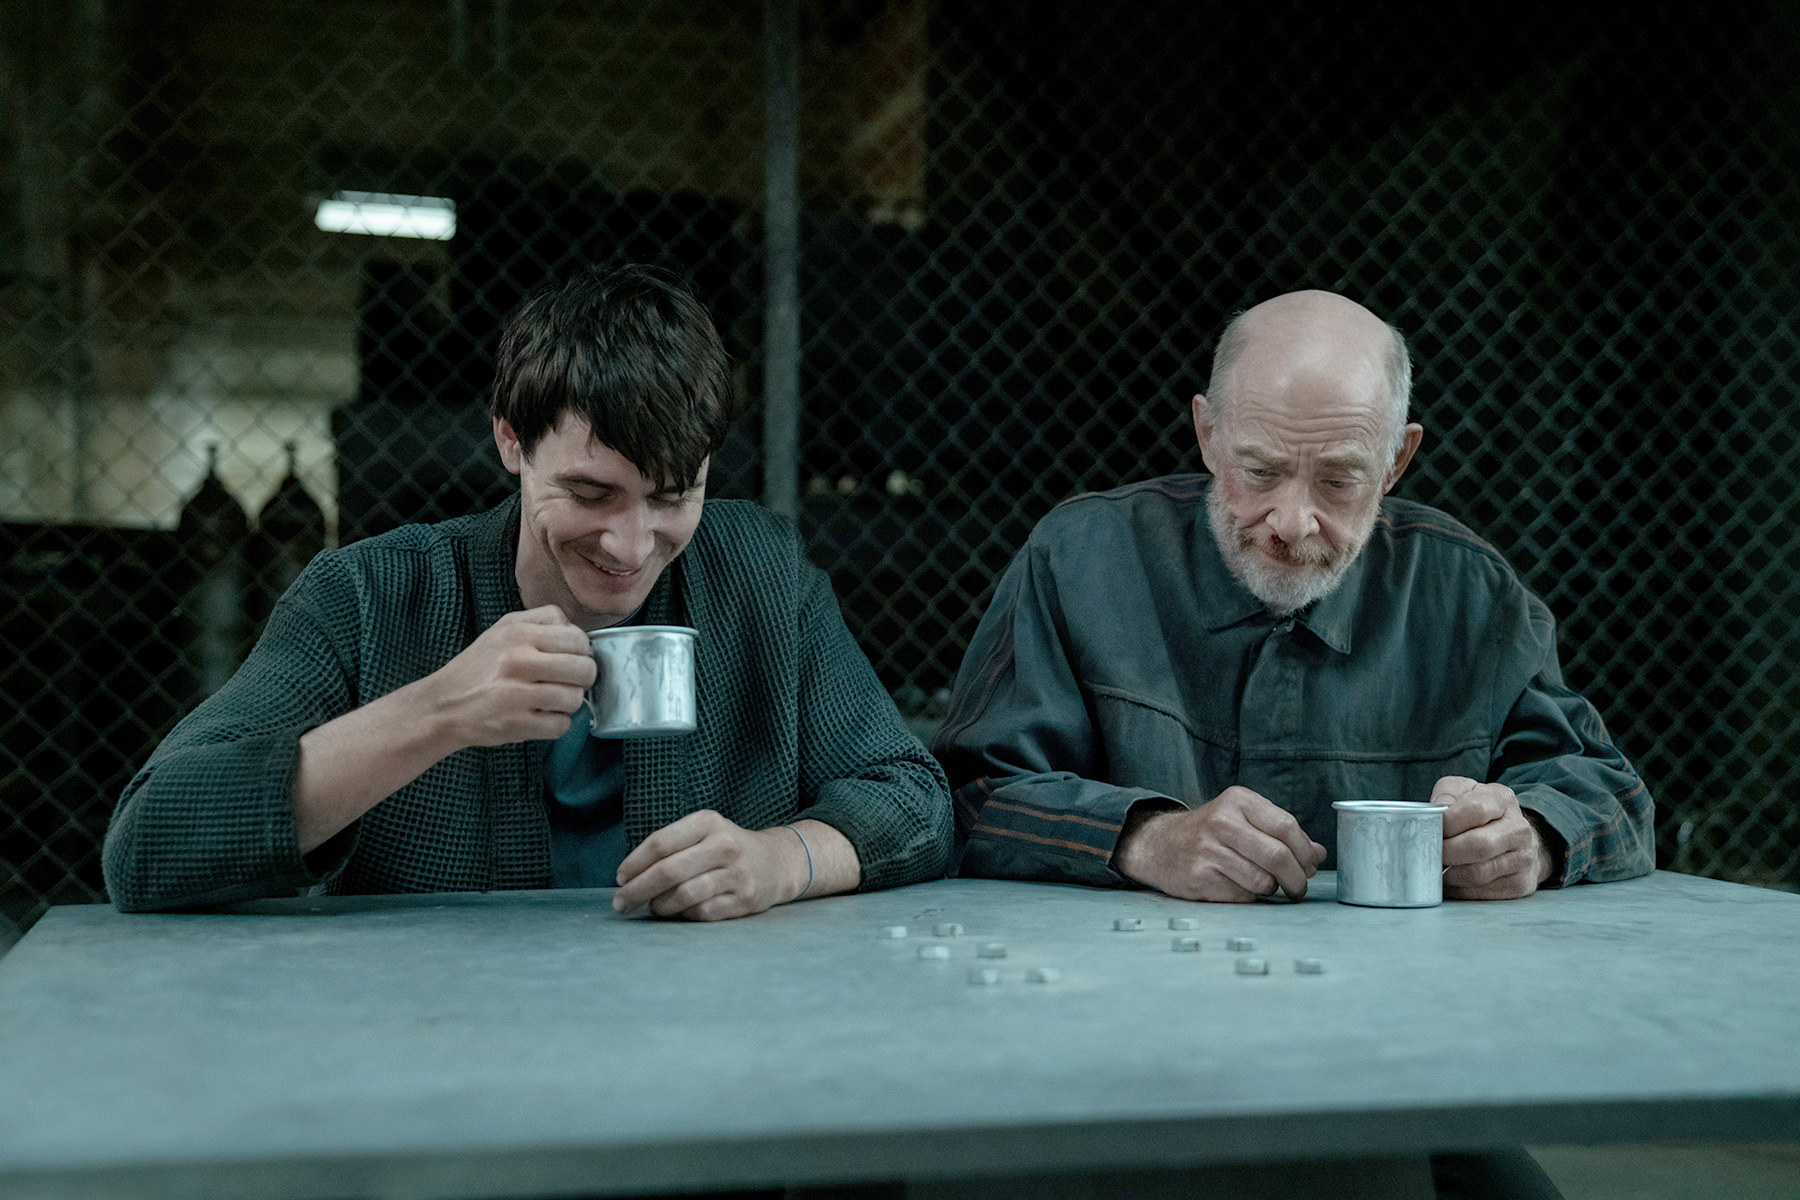 two men drinking together